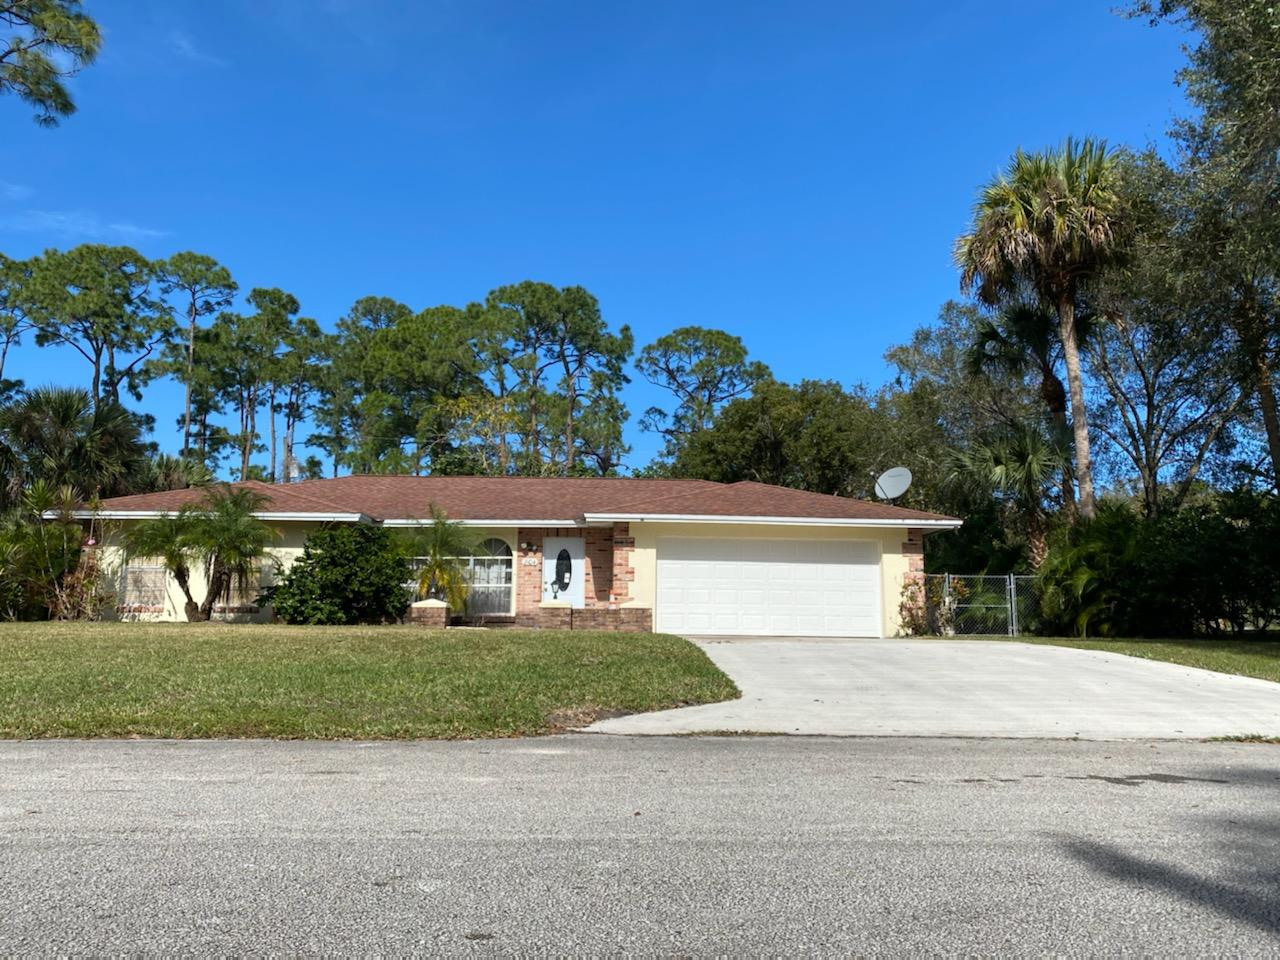 8104 Bayard, Fort Pierce FL 34951